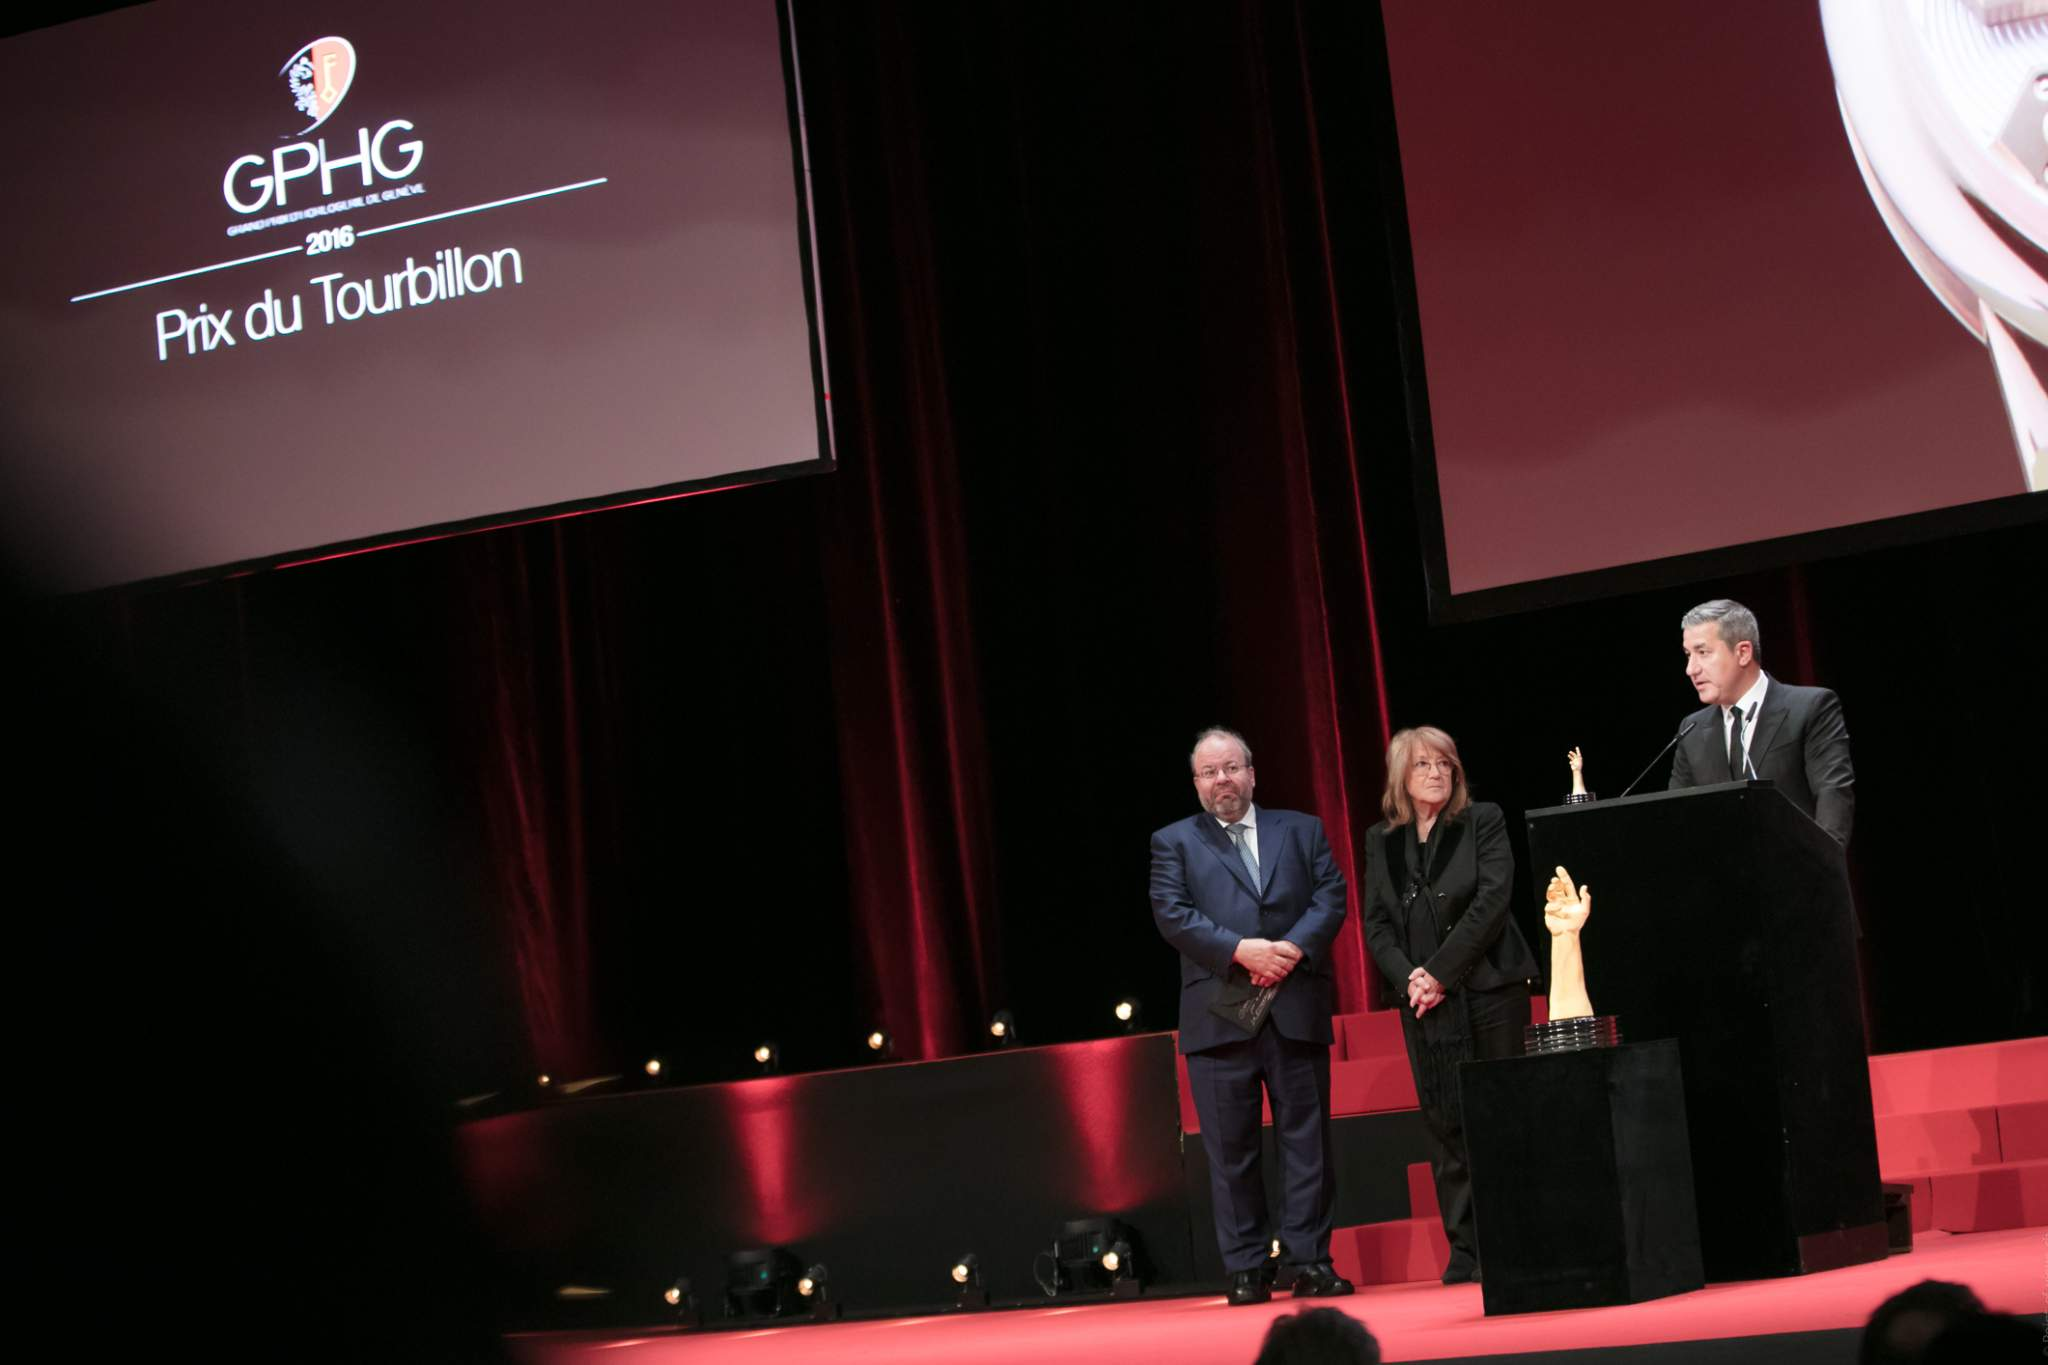 René Beyer et Paola Pujia (jury members) et Antonio Calce (CEO of Girard-Perregaux, winner of the Tourbillon Watch Prize 2016 and the Mechanical Exception Watch Prize 2016)